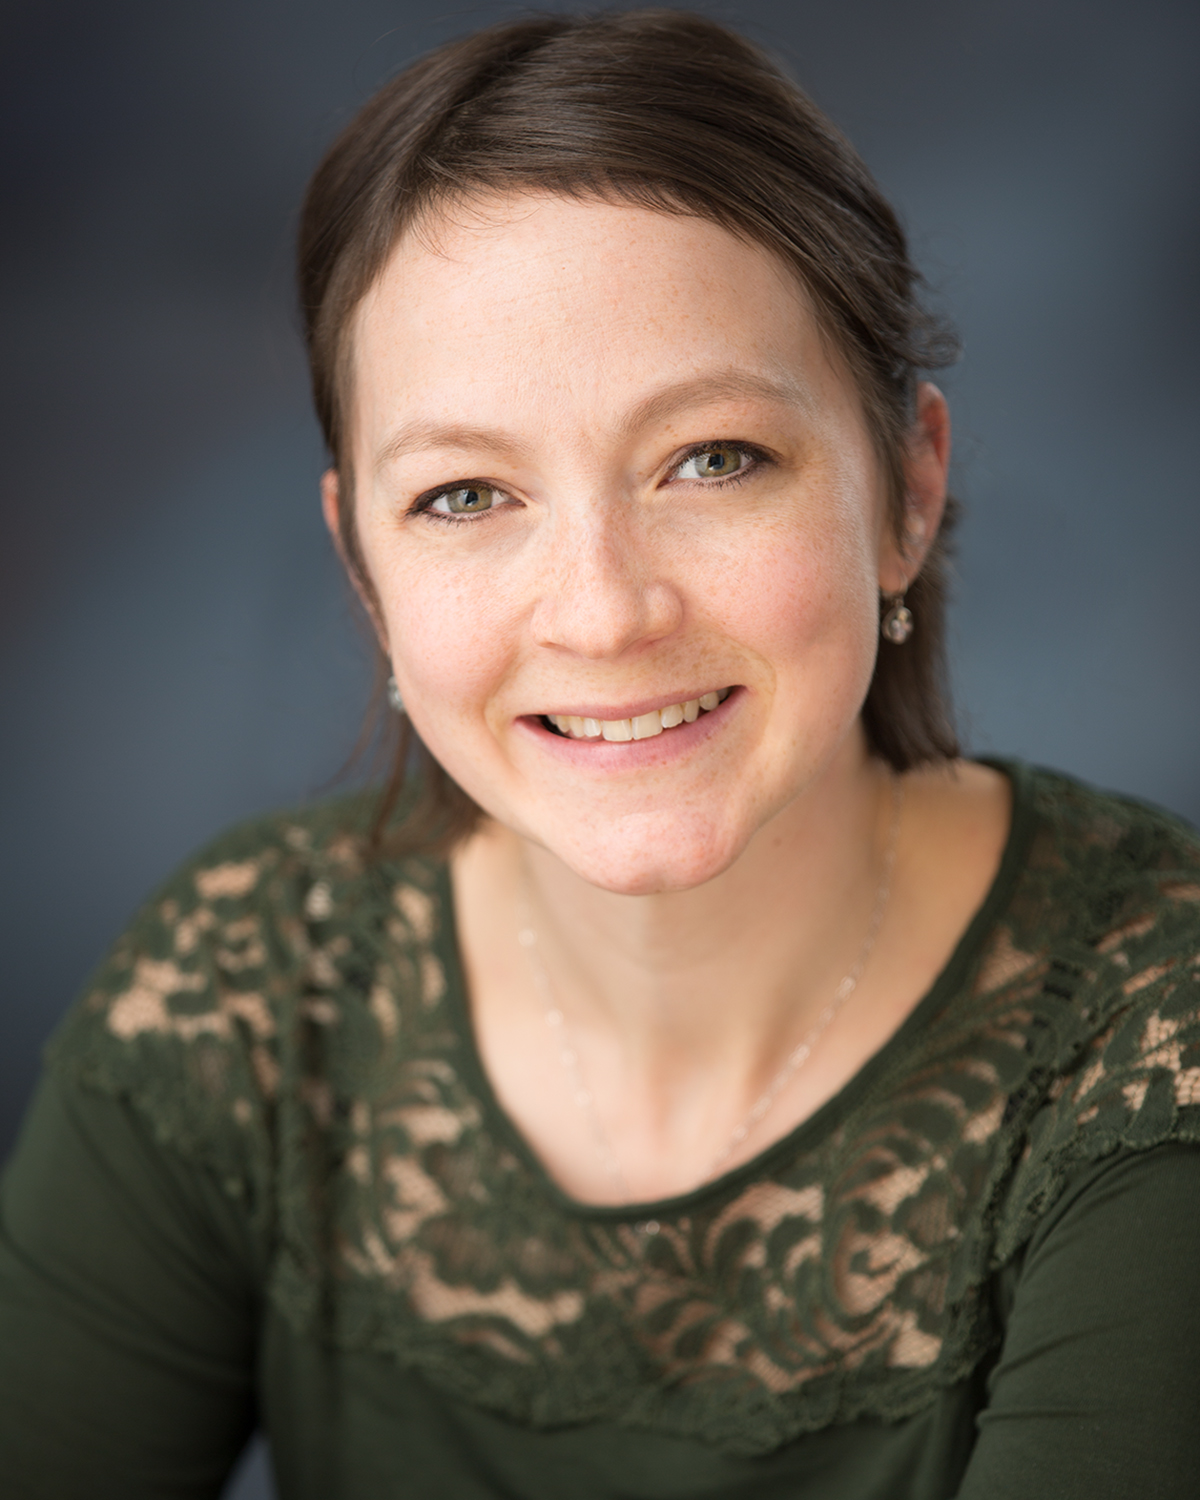 Molly F. Weeber, CNM, MS - Nurse-Midwife, Obstetrics and Gynecology, Portland, OR